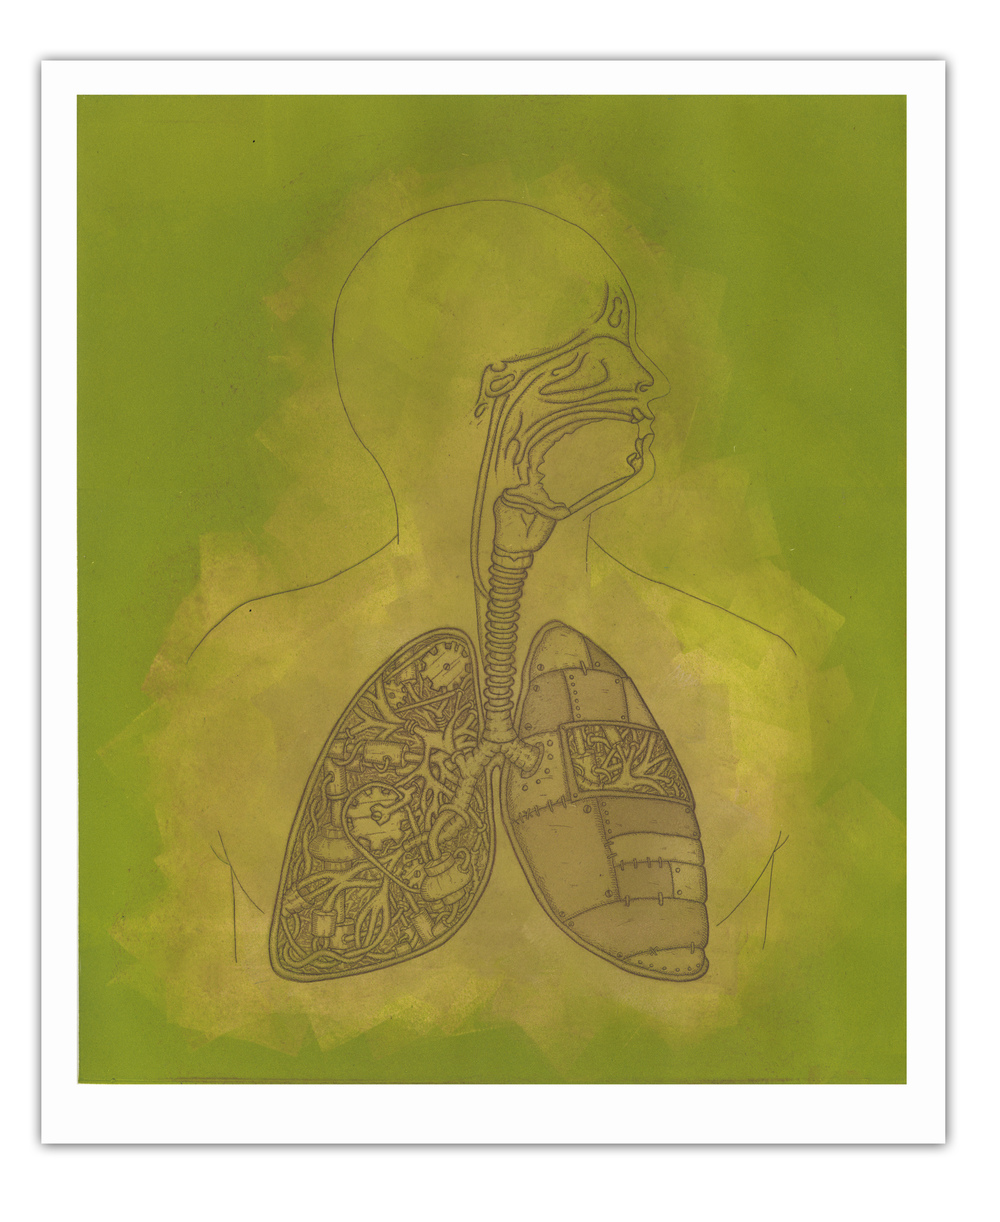 lung green brown.jpg